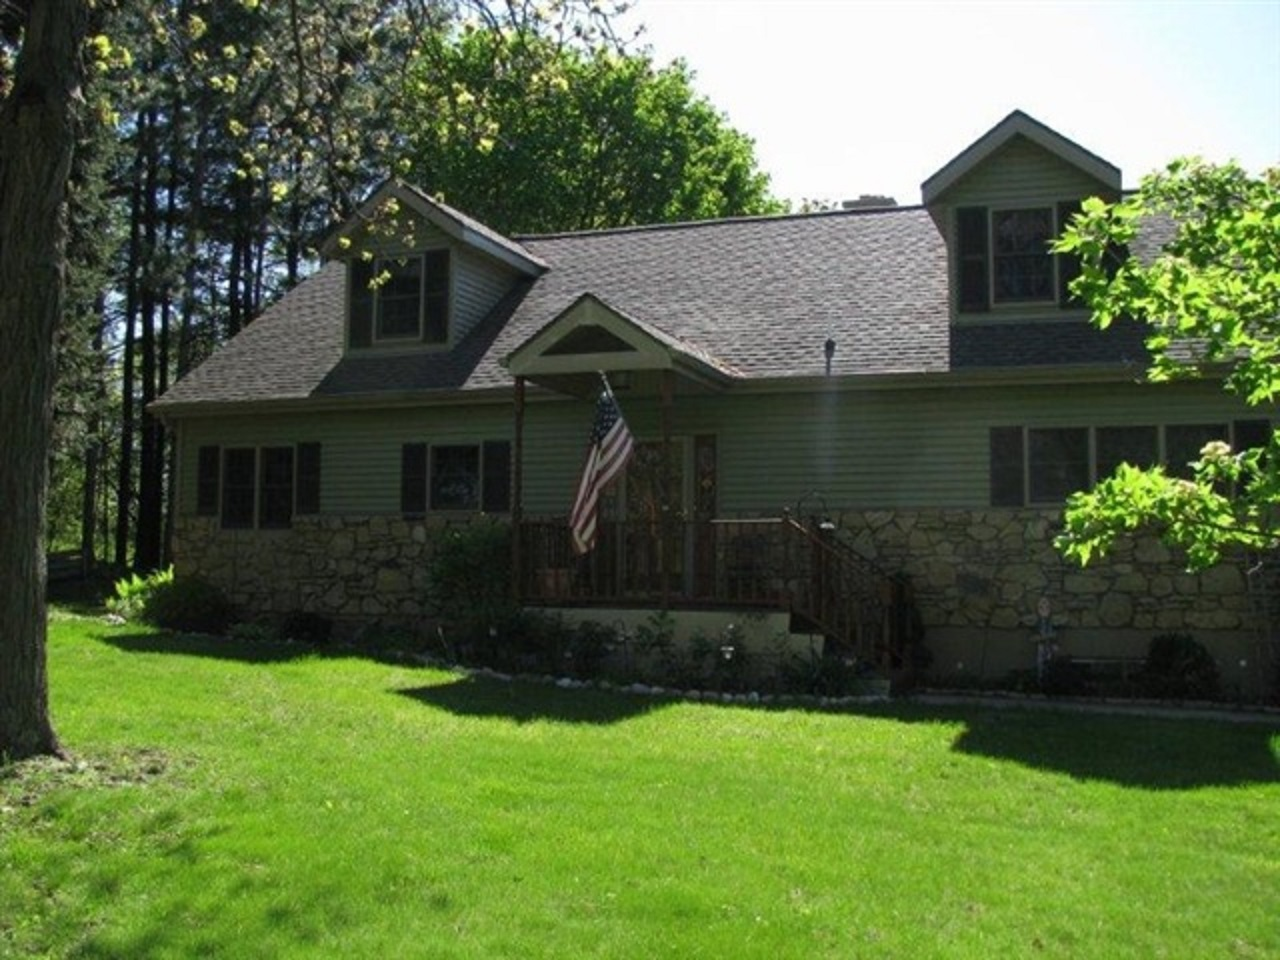 5 Acre Home with Horse Stalls in Fulton Wisconsin – Sold!